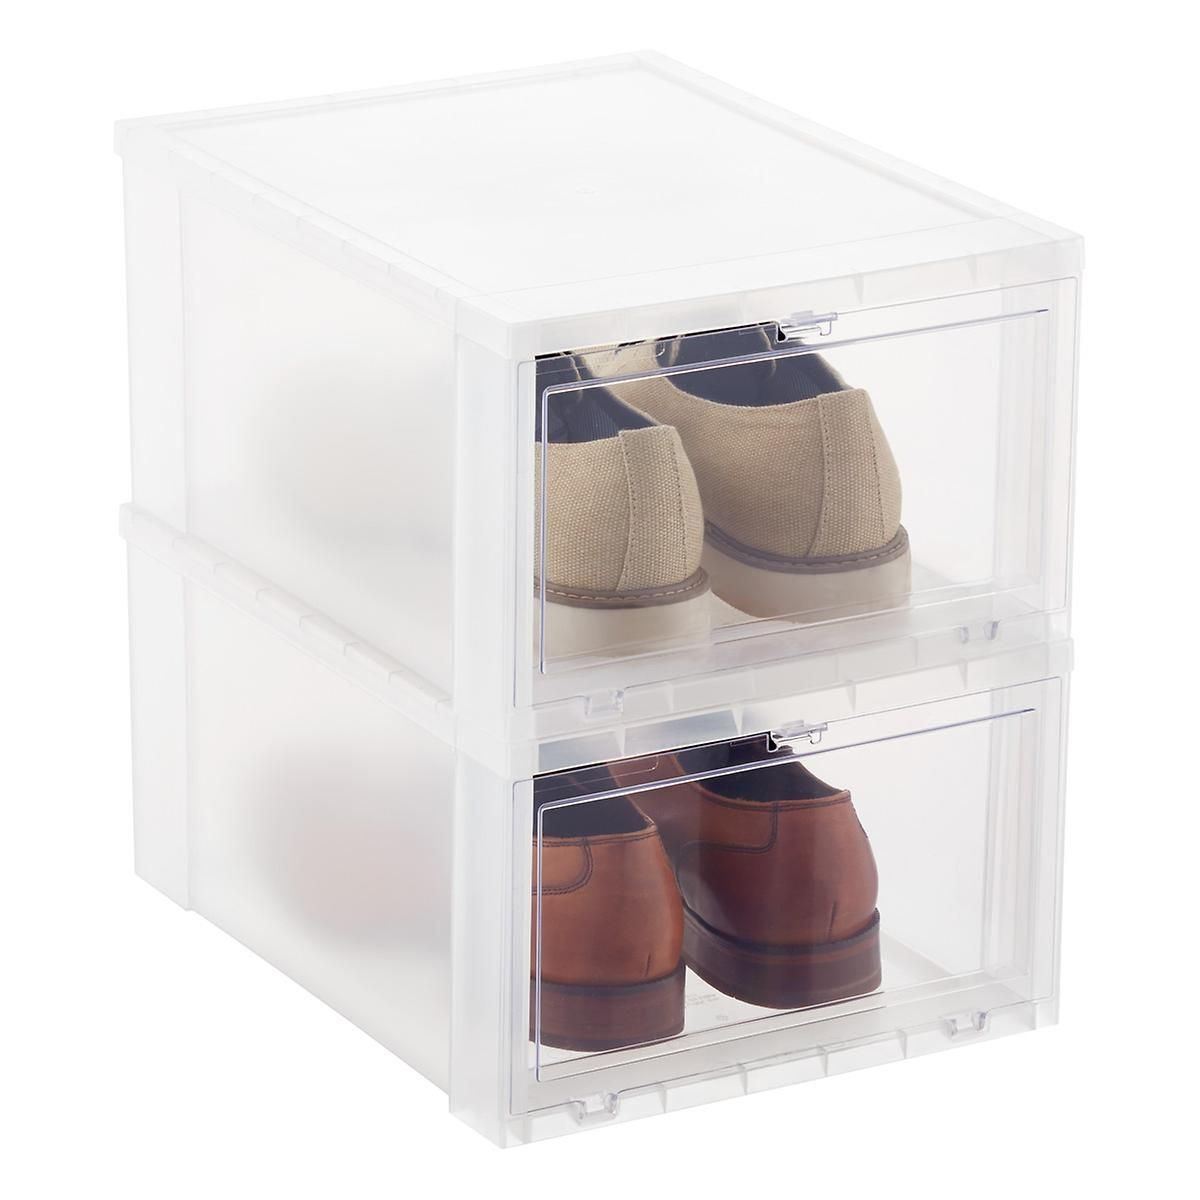 The Clear Window Of Our Drop Front Shoe Box Lets You